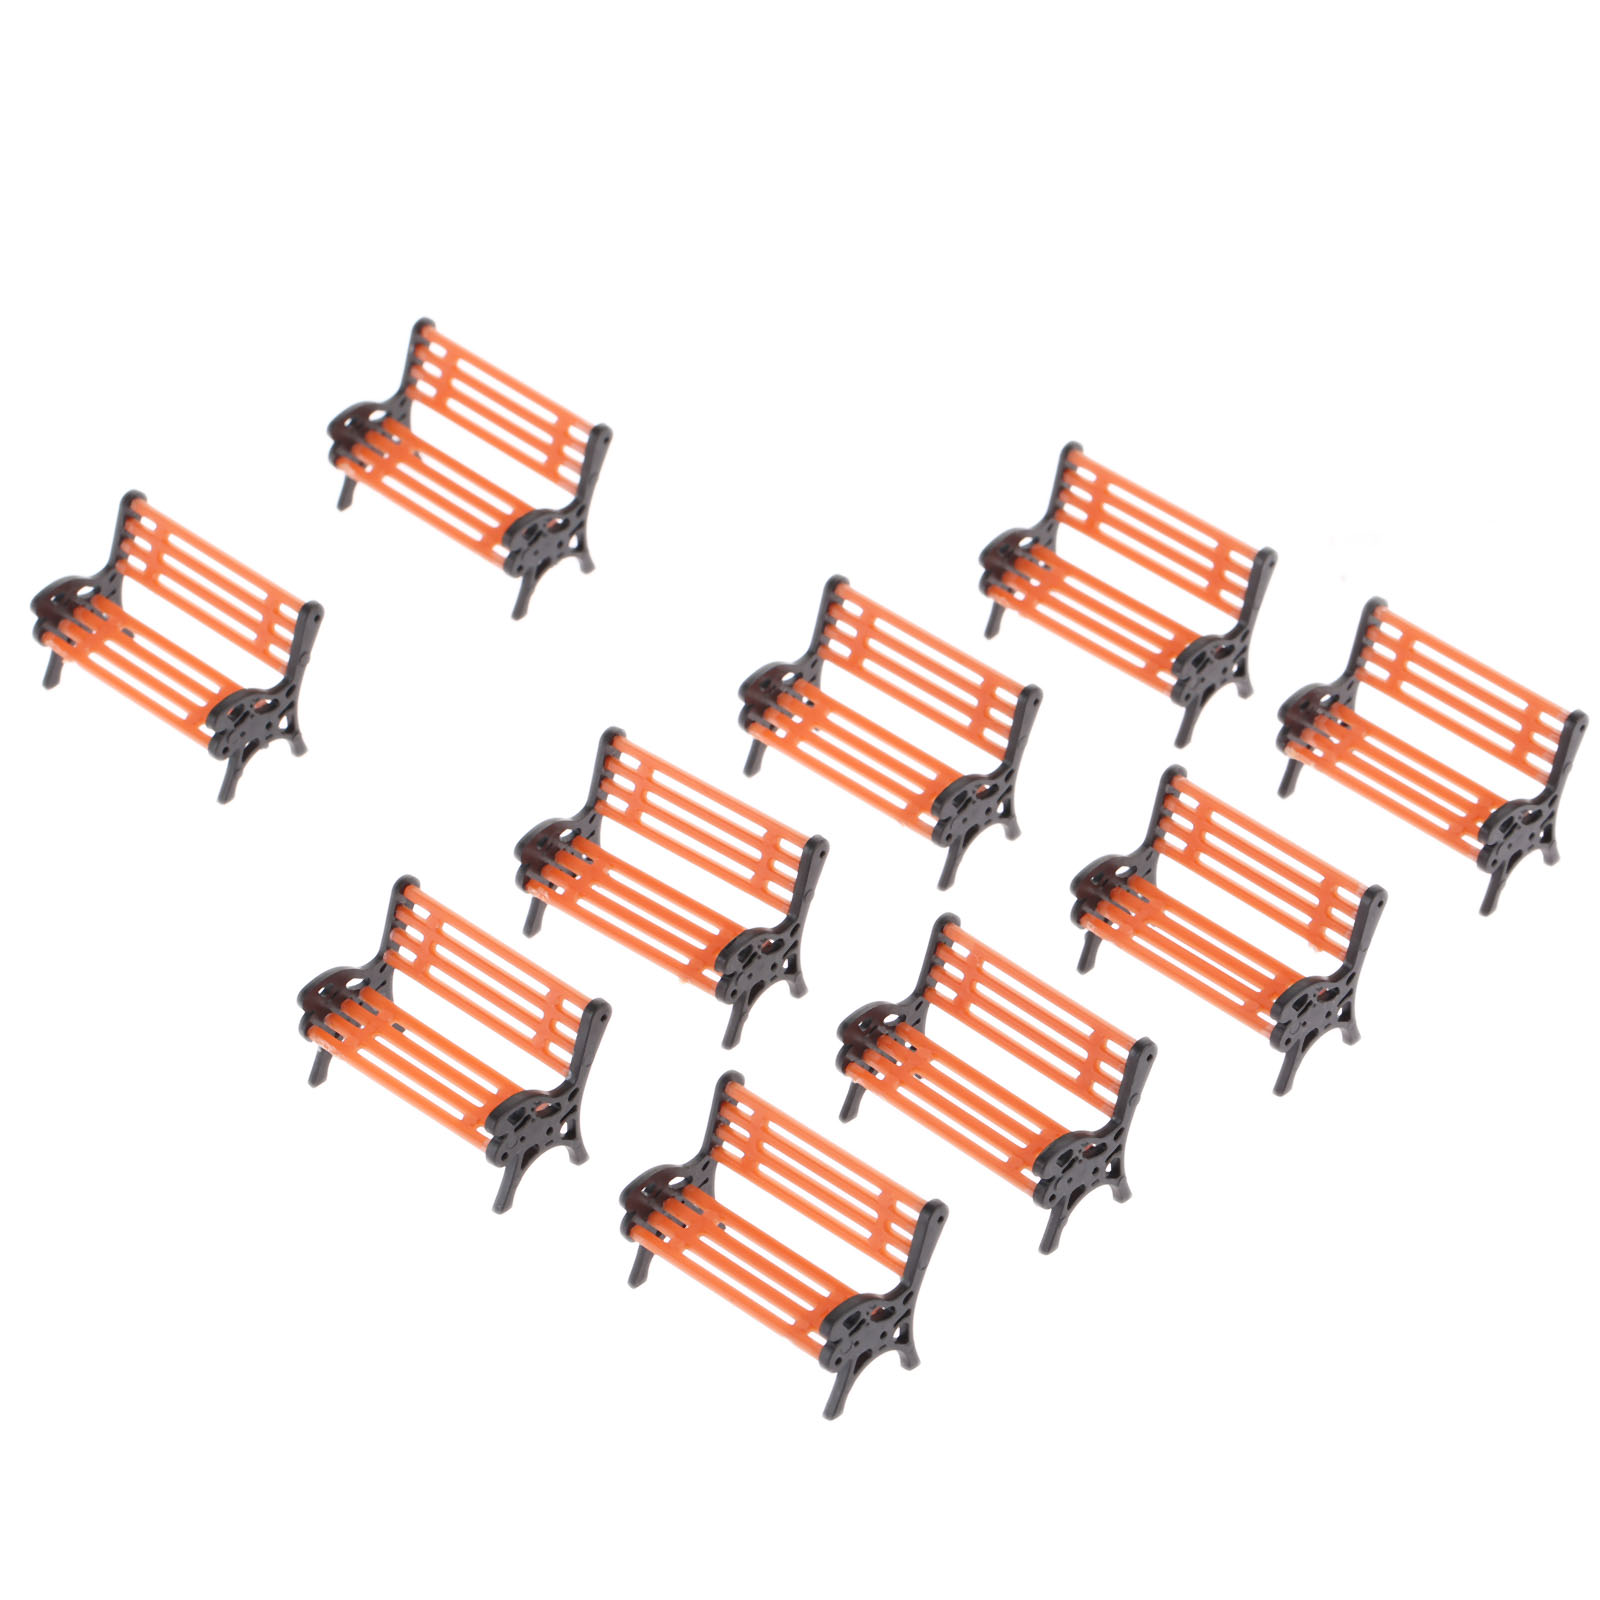 10PCS Modell <font><b>Park</b></font> Bench 1:50 <font><b>Mini</b></font> Garten Ornament Miniatur <font><b>Park</b></font> Bench Handwerk DIY Figuren Landschaft Bench Modell Garten Decor image